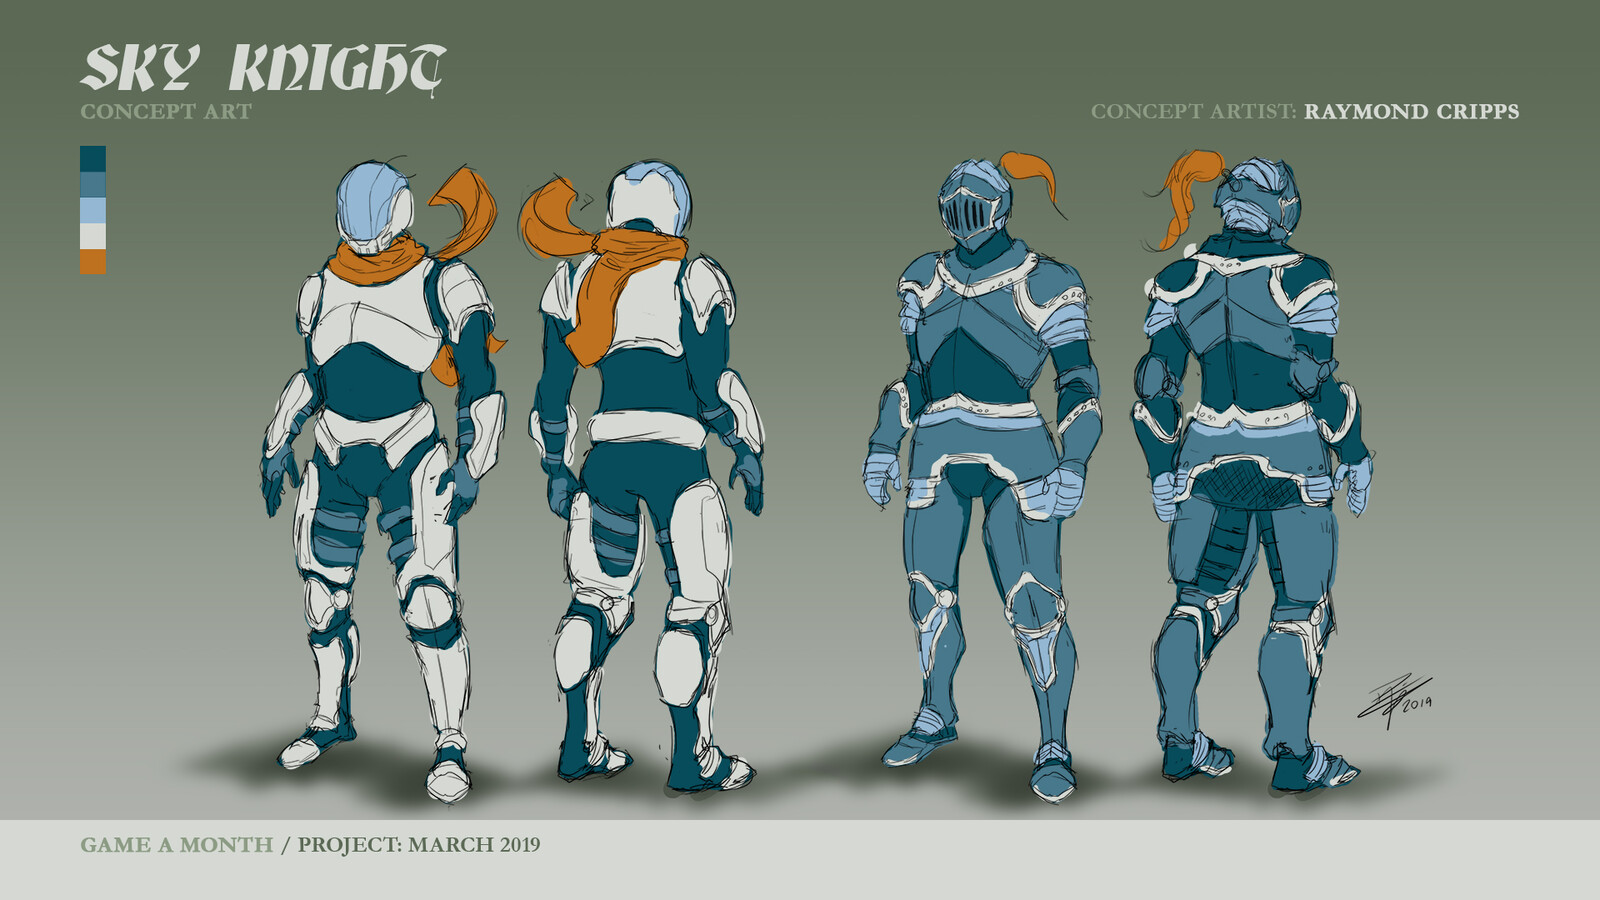 Concept art for Sky Knight